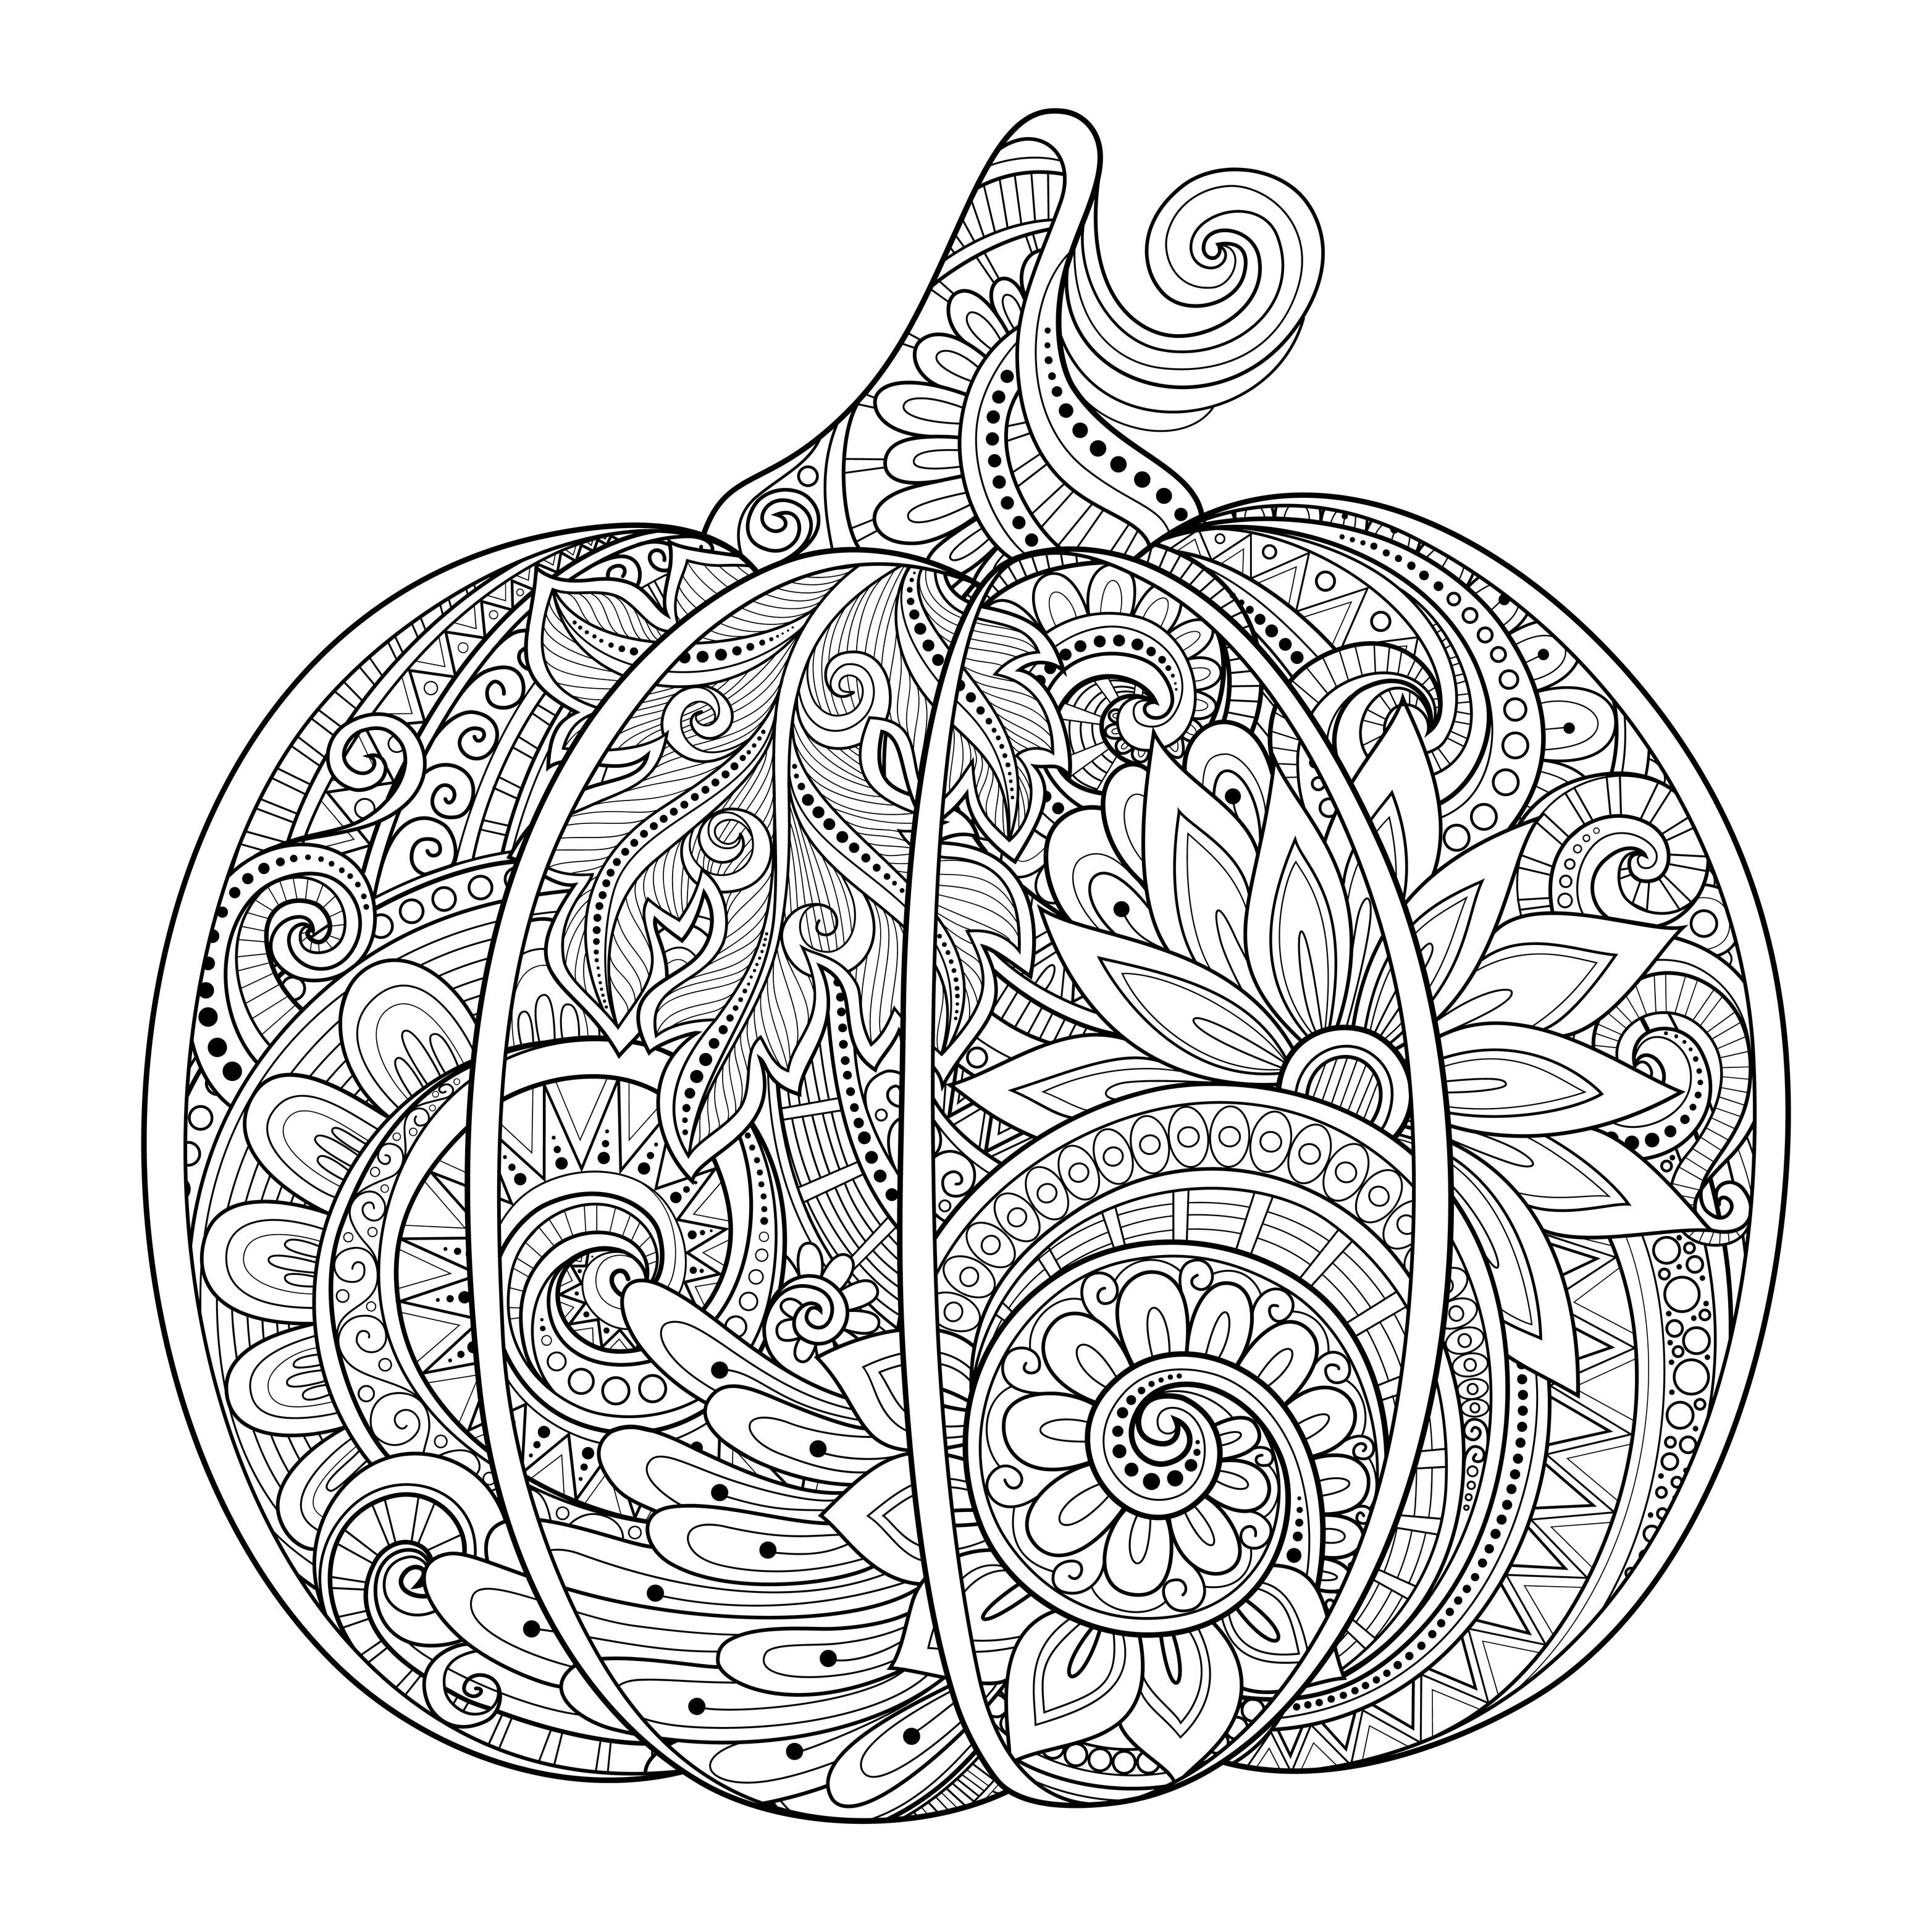 Free coloring page coloring-halloween-pumpkin-zentangle-source-123rf ...